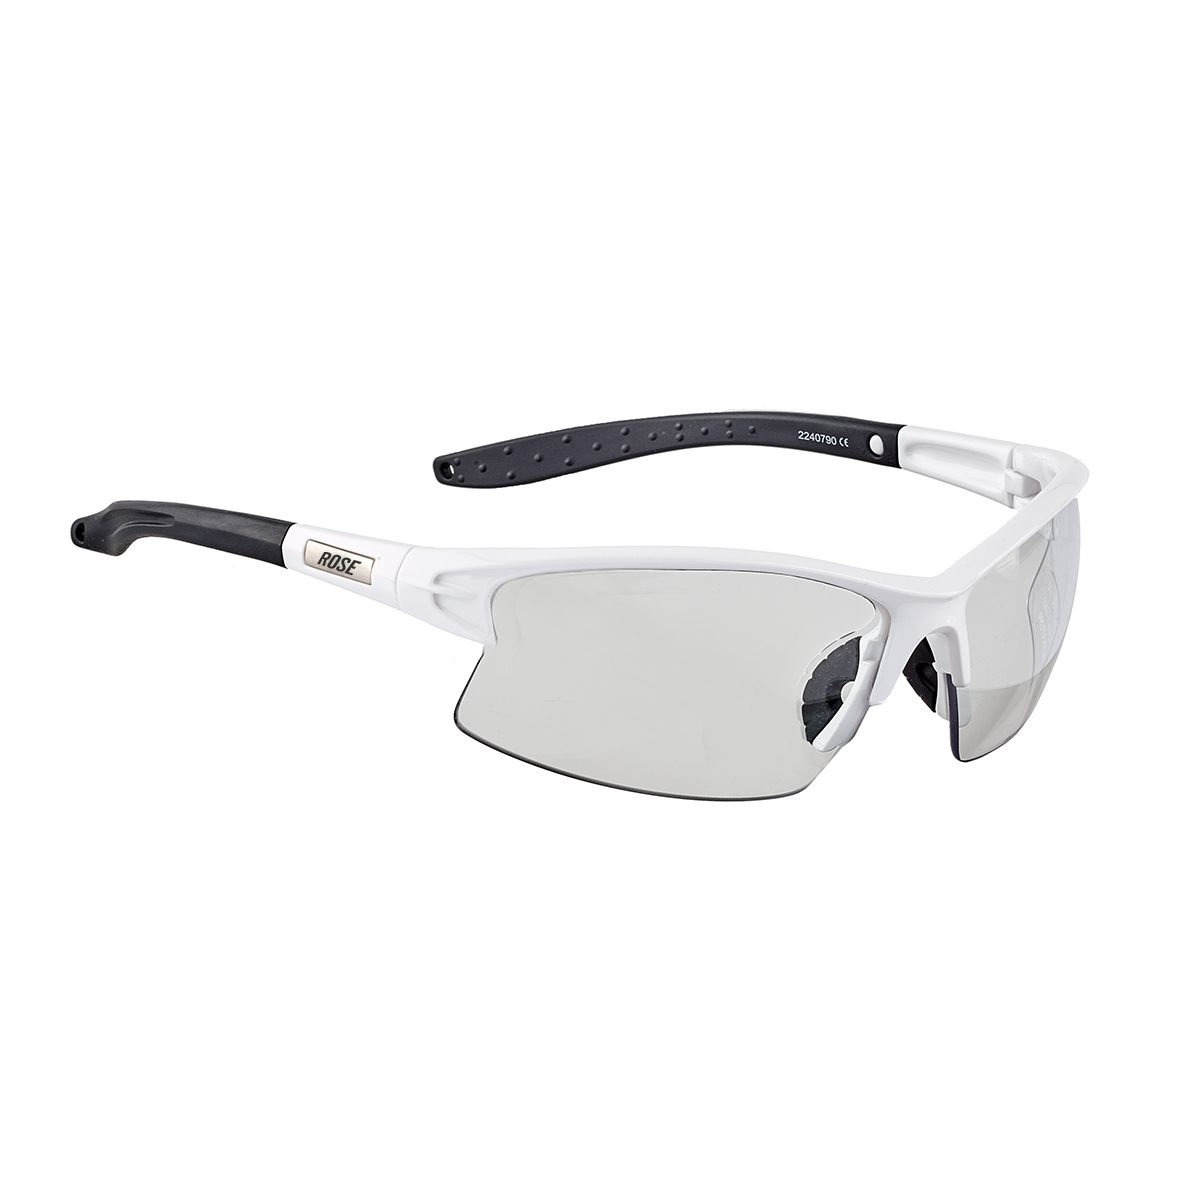 PS 08 Photochromic Brille